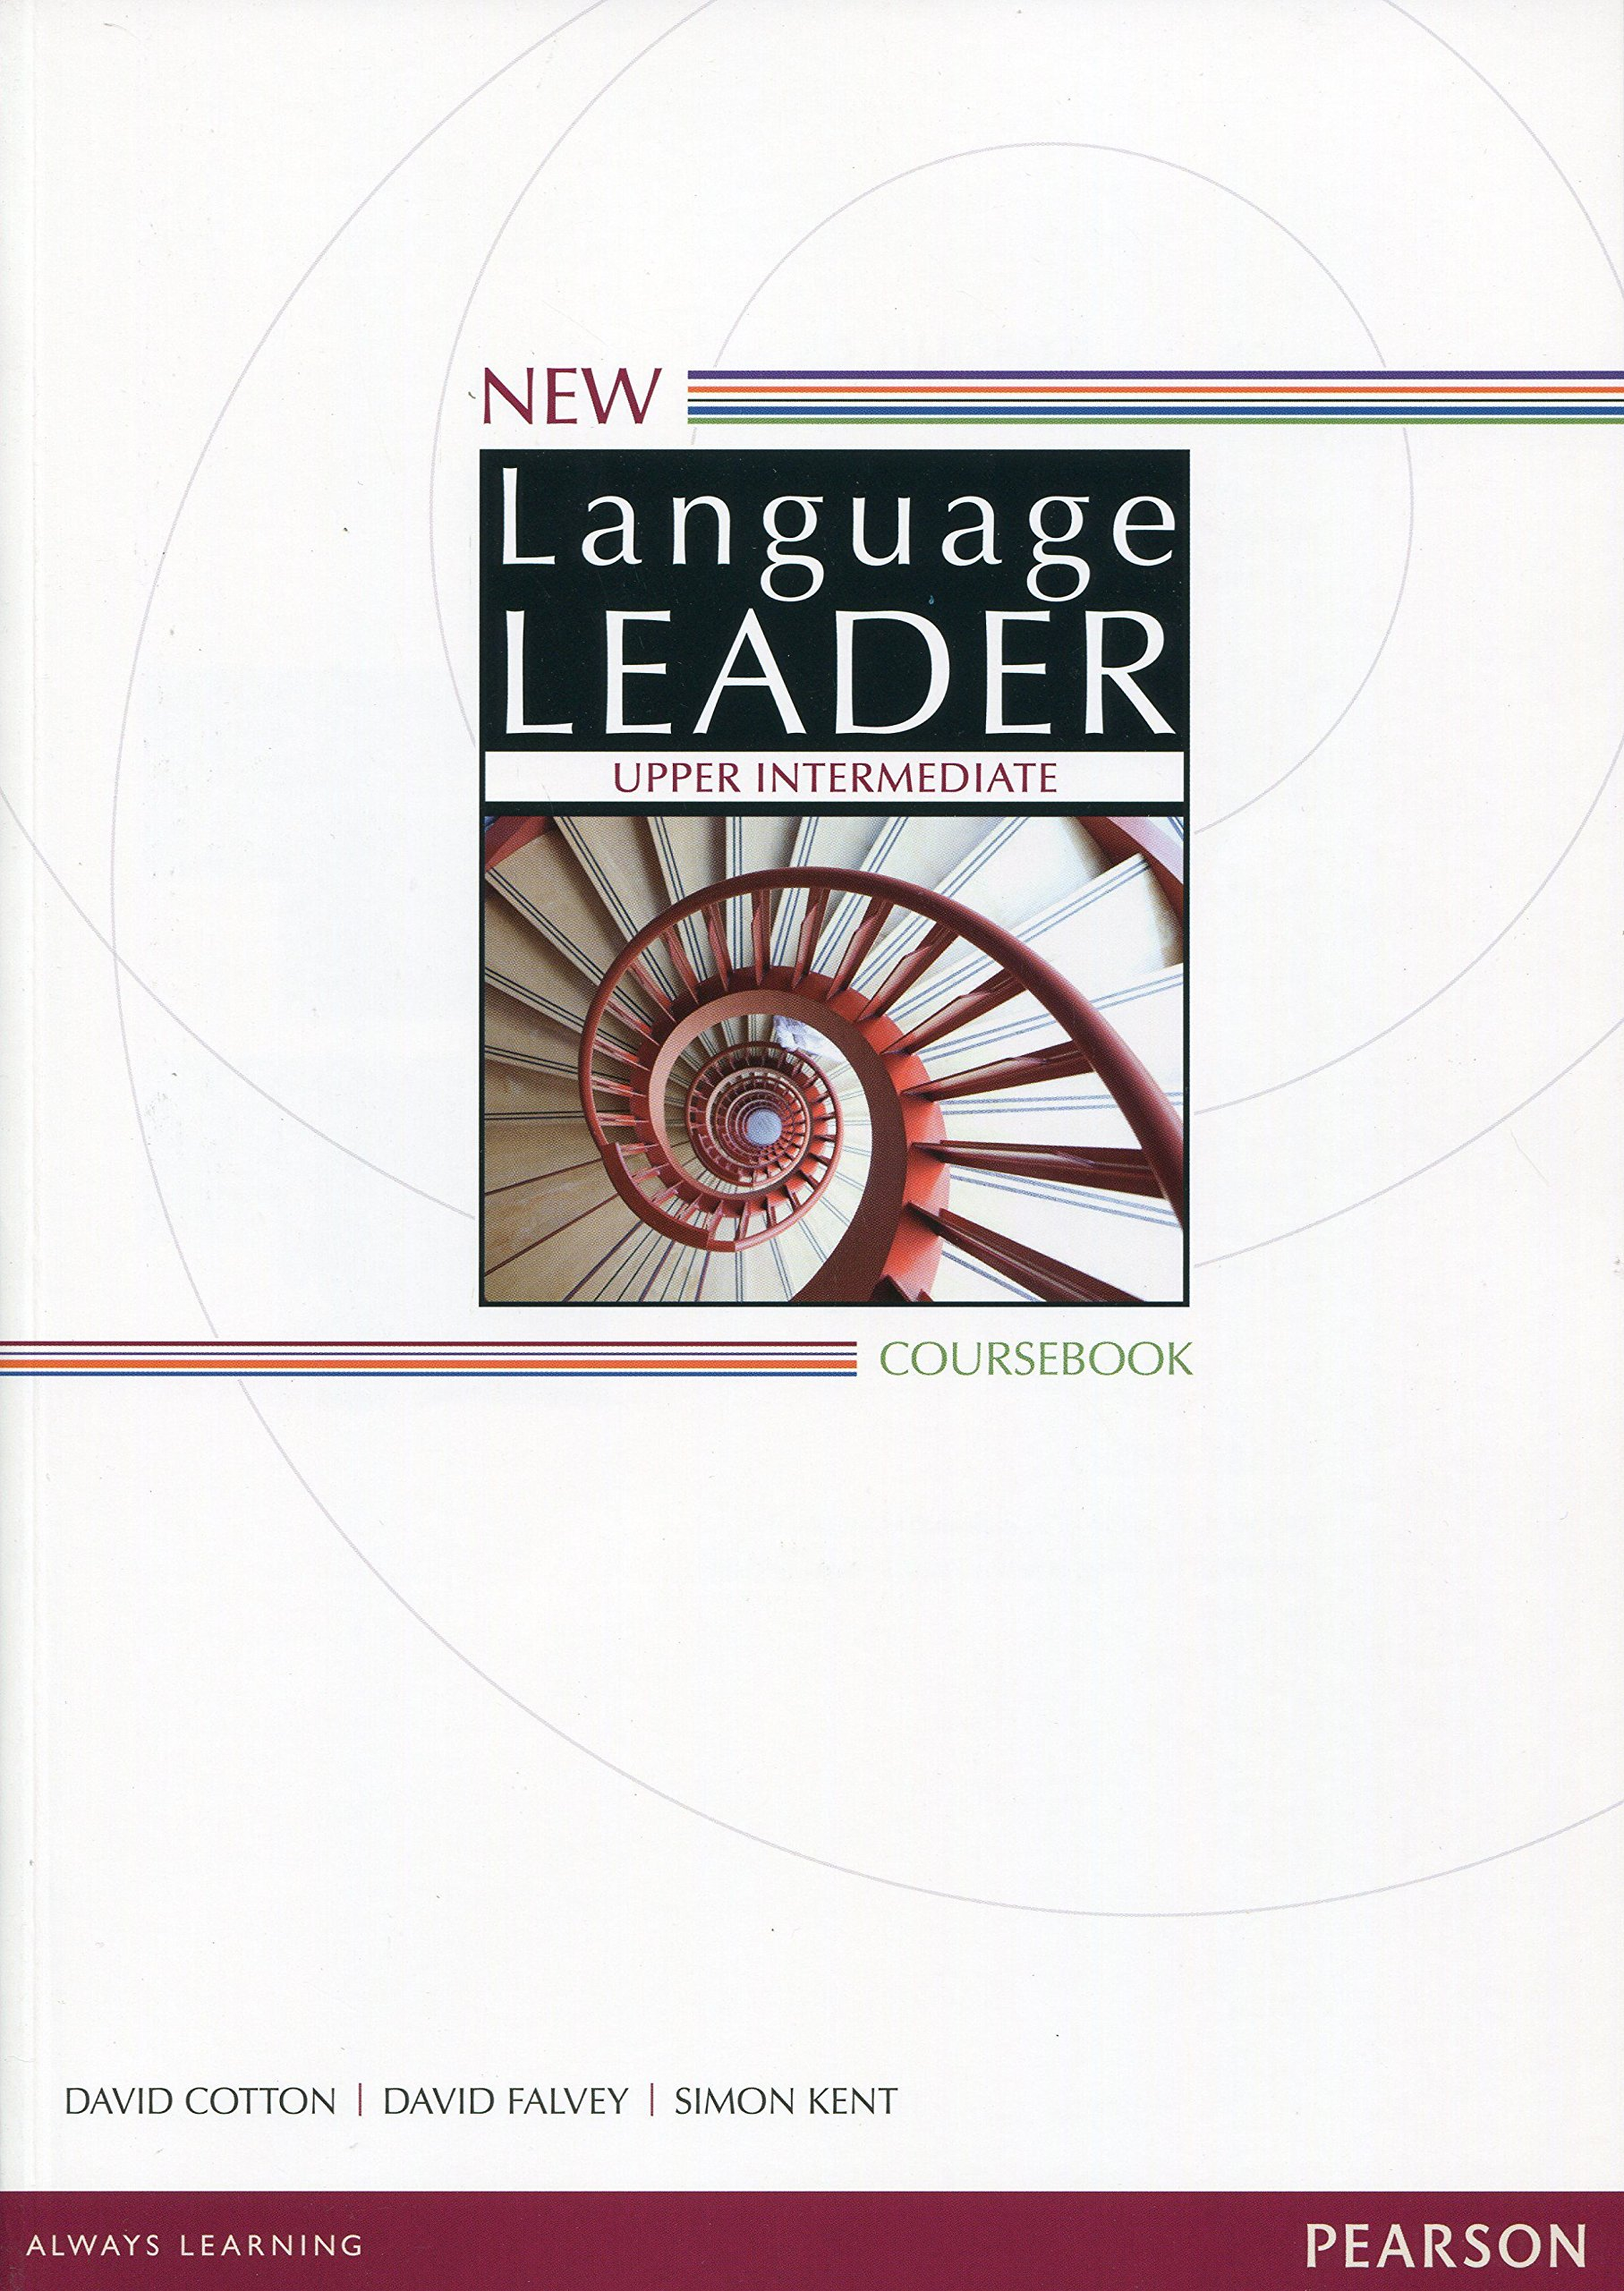 Language leader upper intermediate скачать pdf